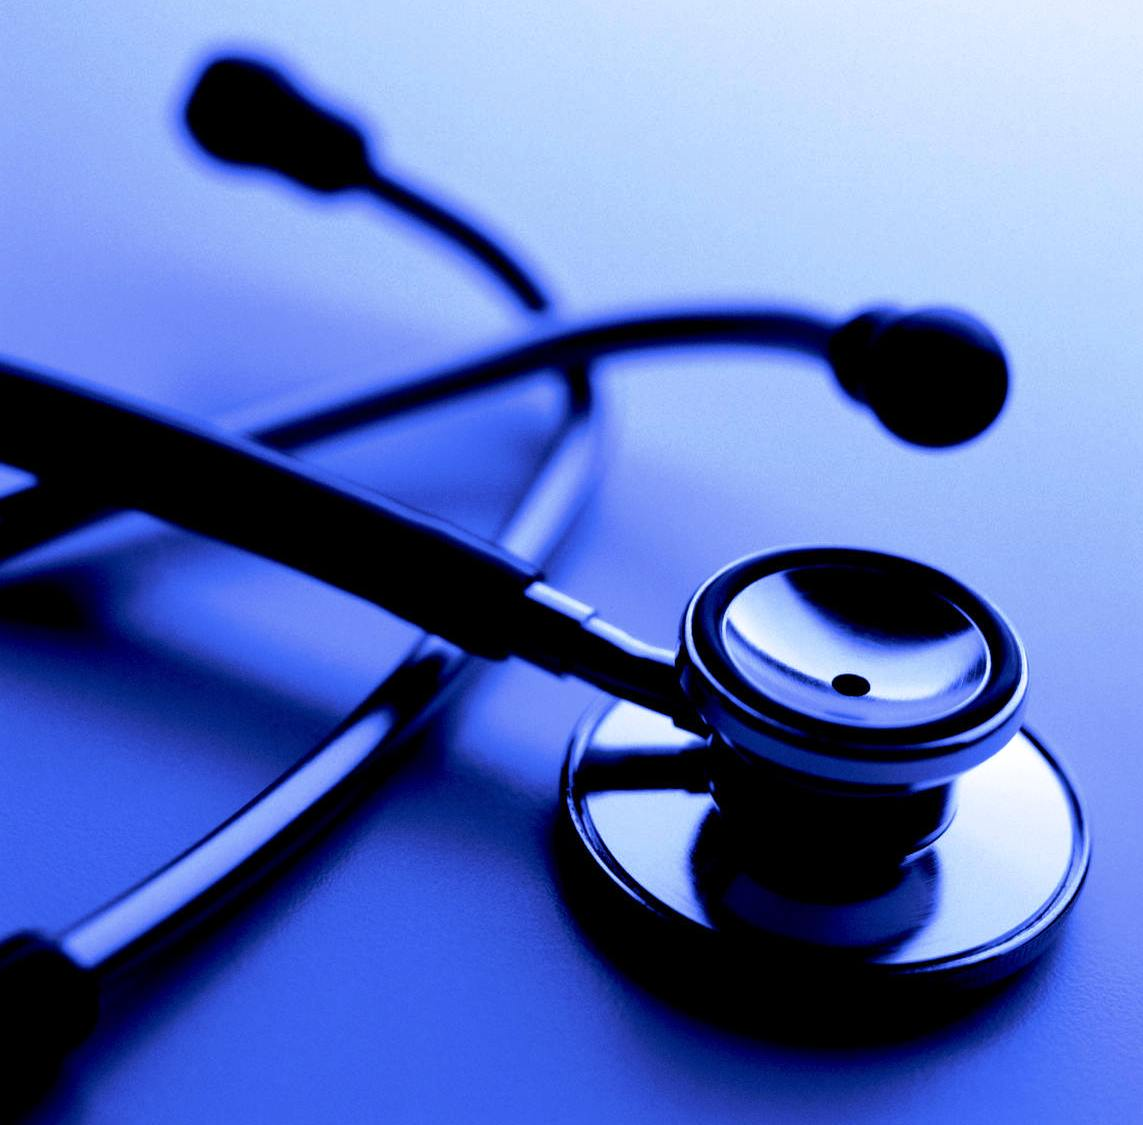 Pin Stethoscope Backgrounds Wallpapers 1143x1125